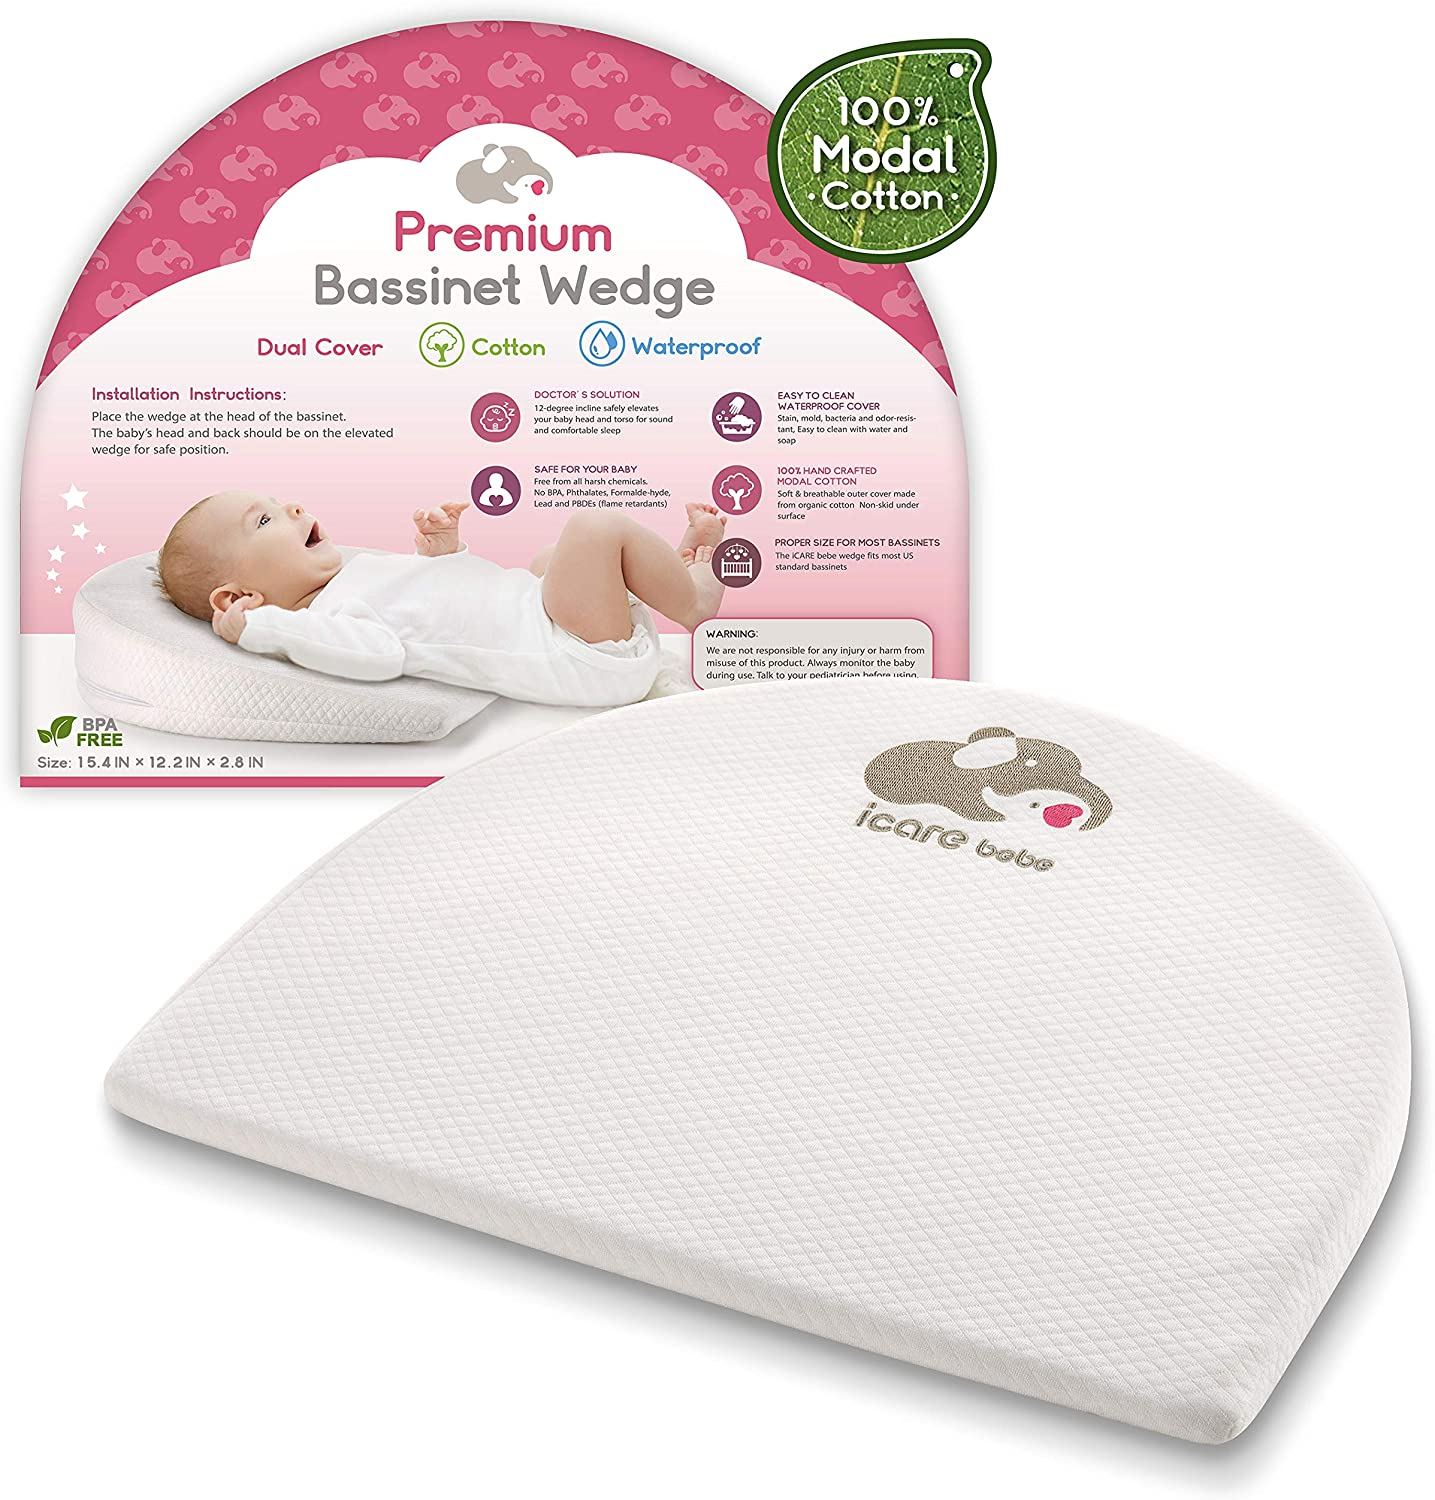 Bassinet Mattress Wedge – Baby Pillow for Acid Reflux – 12-Degree Inclined Baby Sleeper Wedge – Modal Cotton Breathable Fabric – High Density Firm Foam Head Support for Infants – Removable Cover